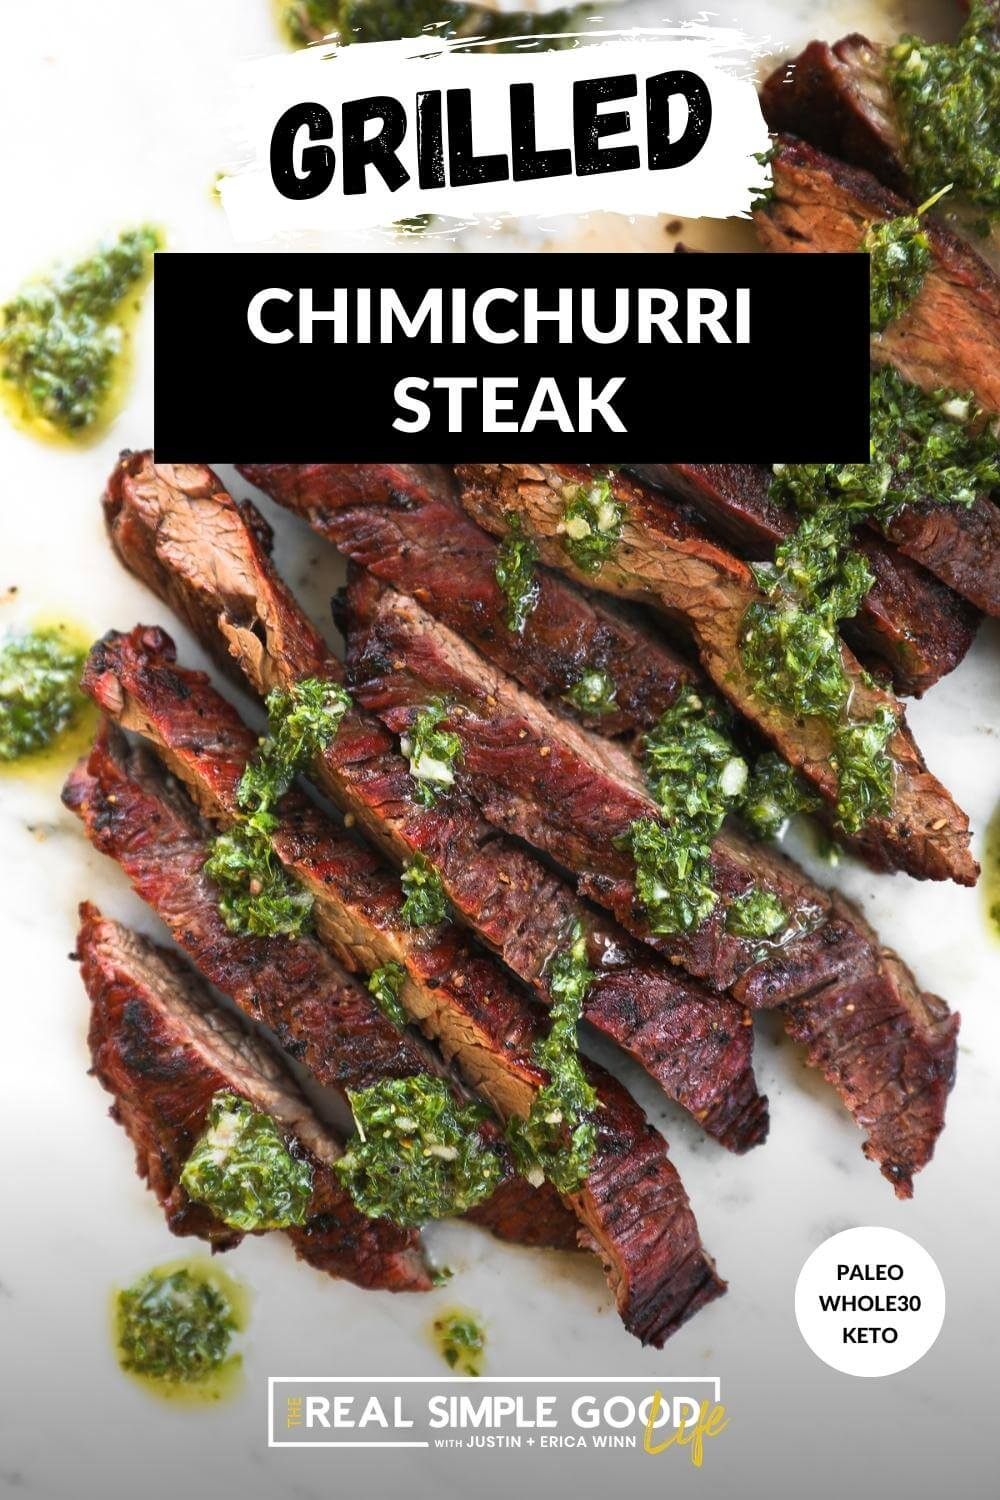 Image of sliced steak with chimichurri sauce and text overlay on top